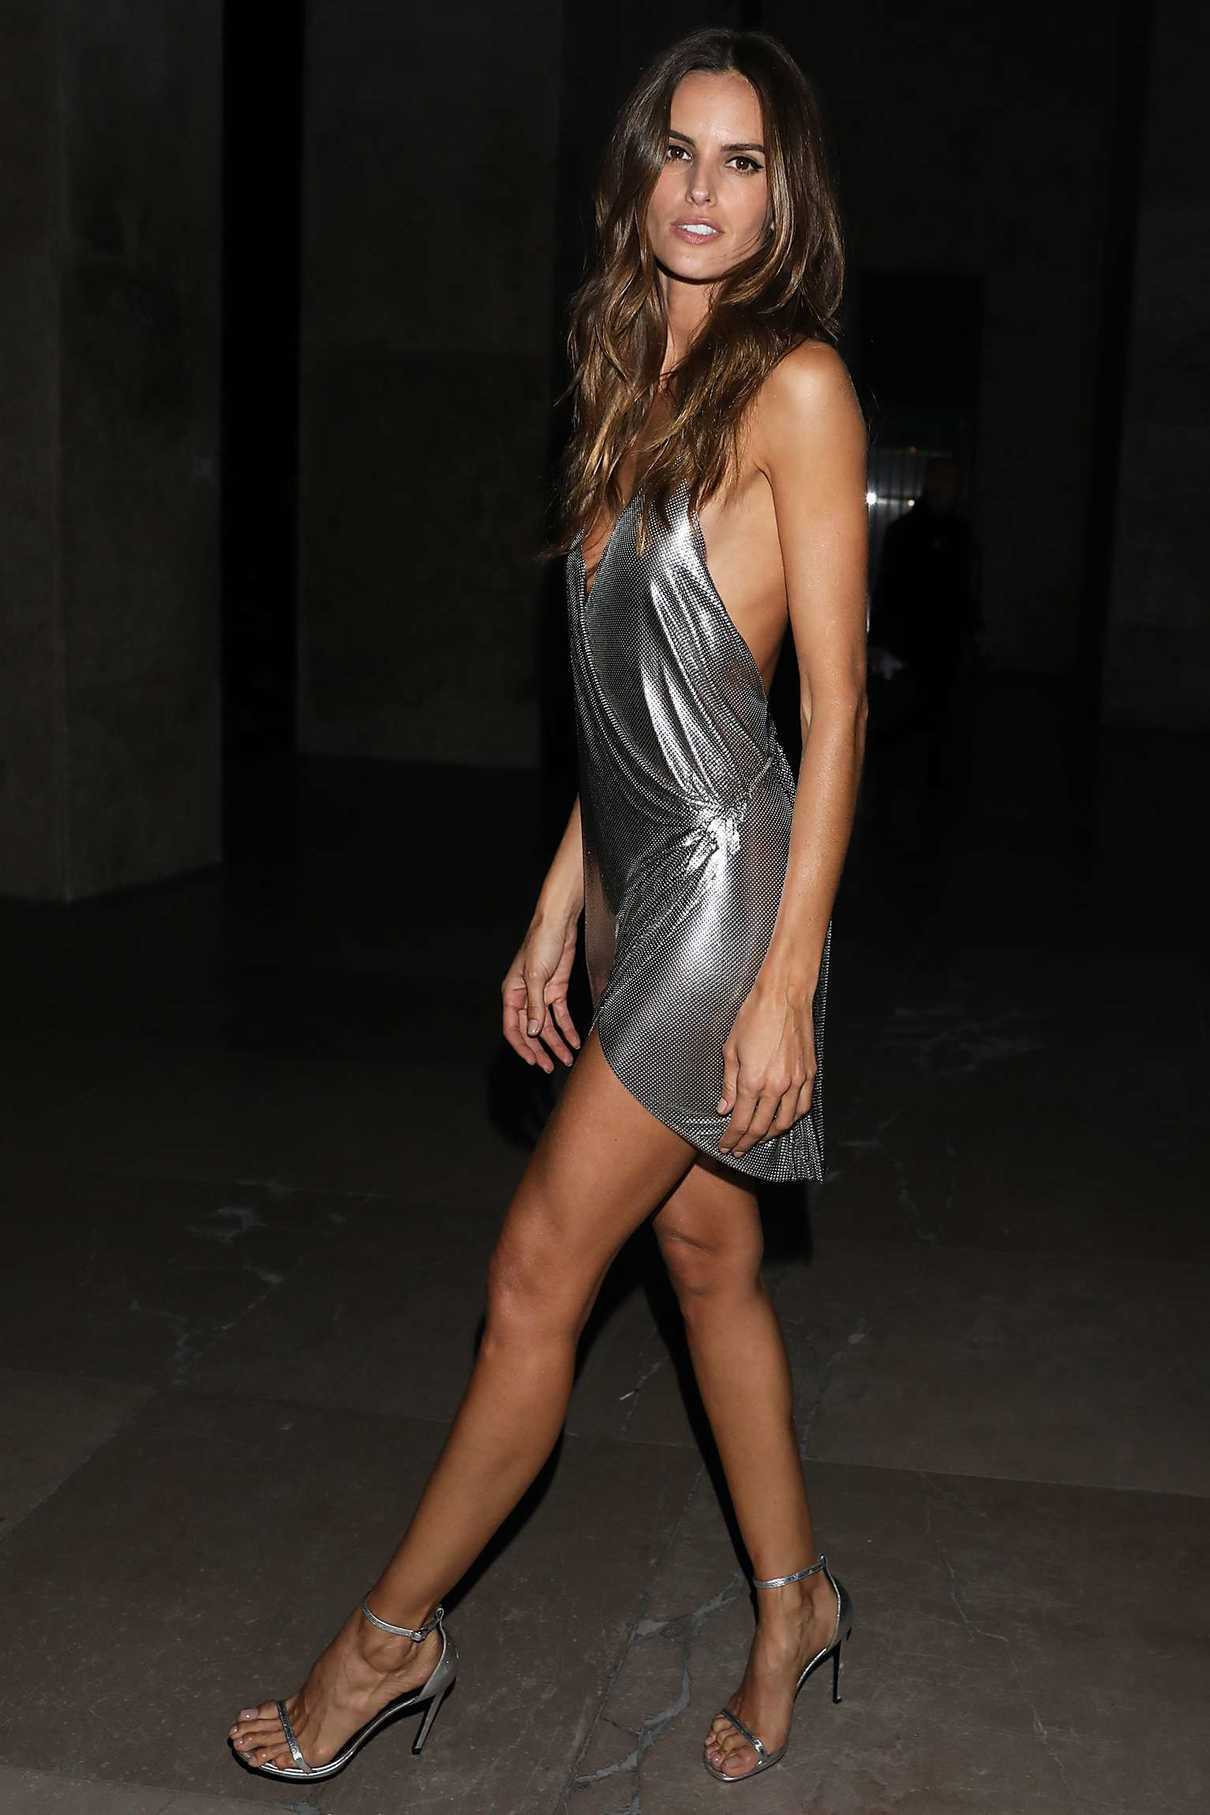 Izabel goulart actress pictures